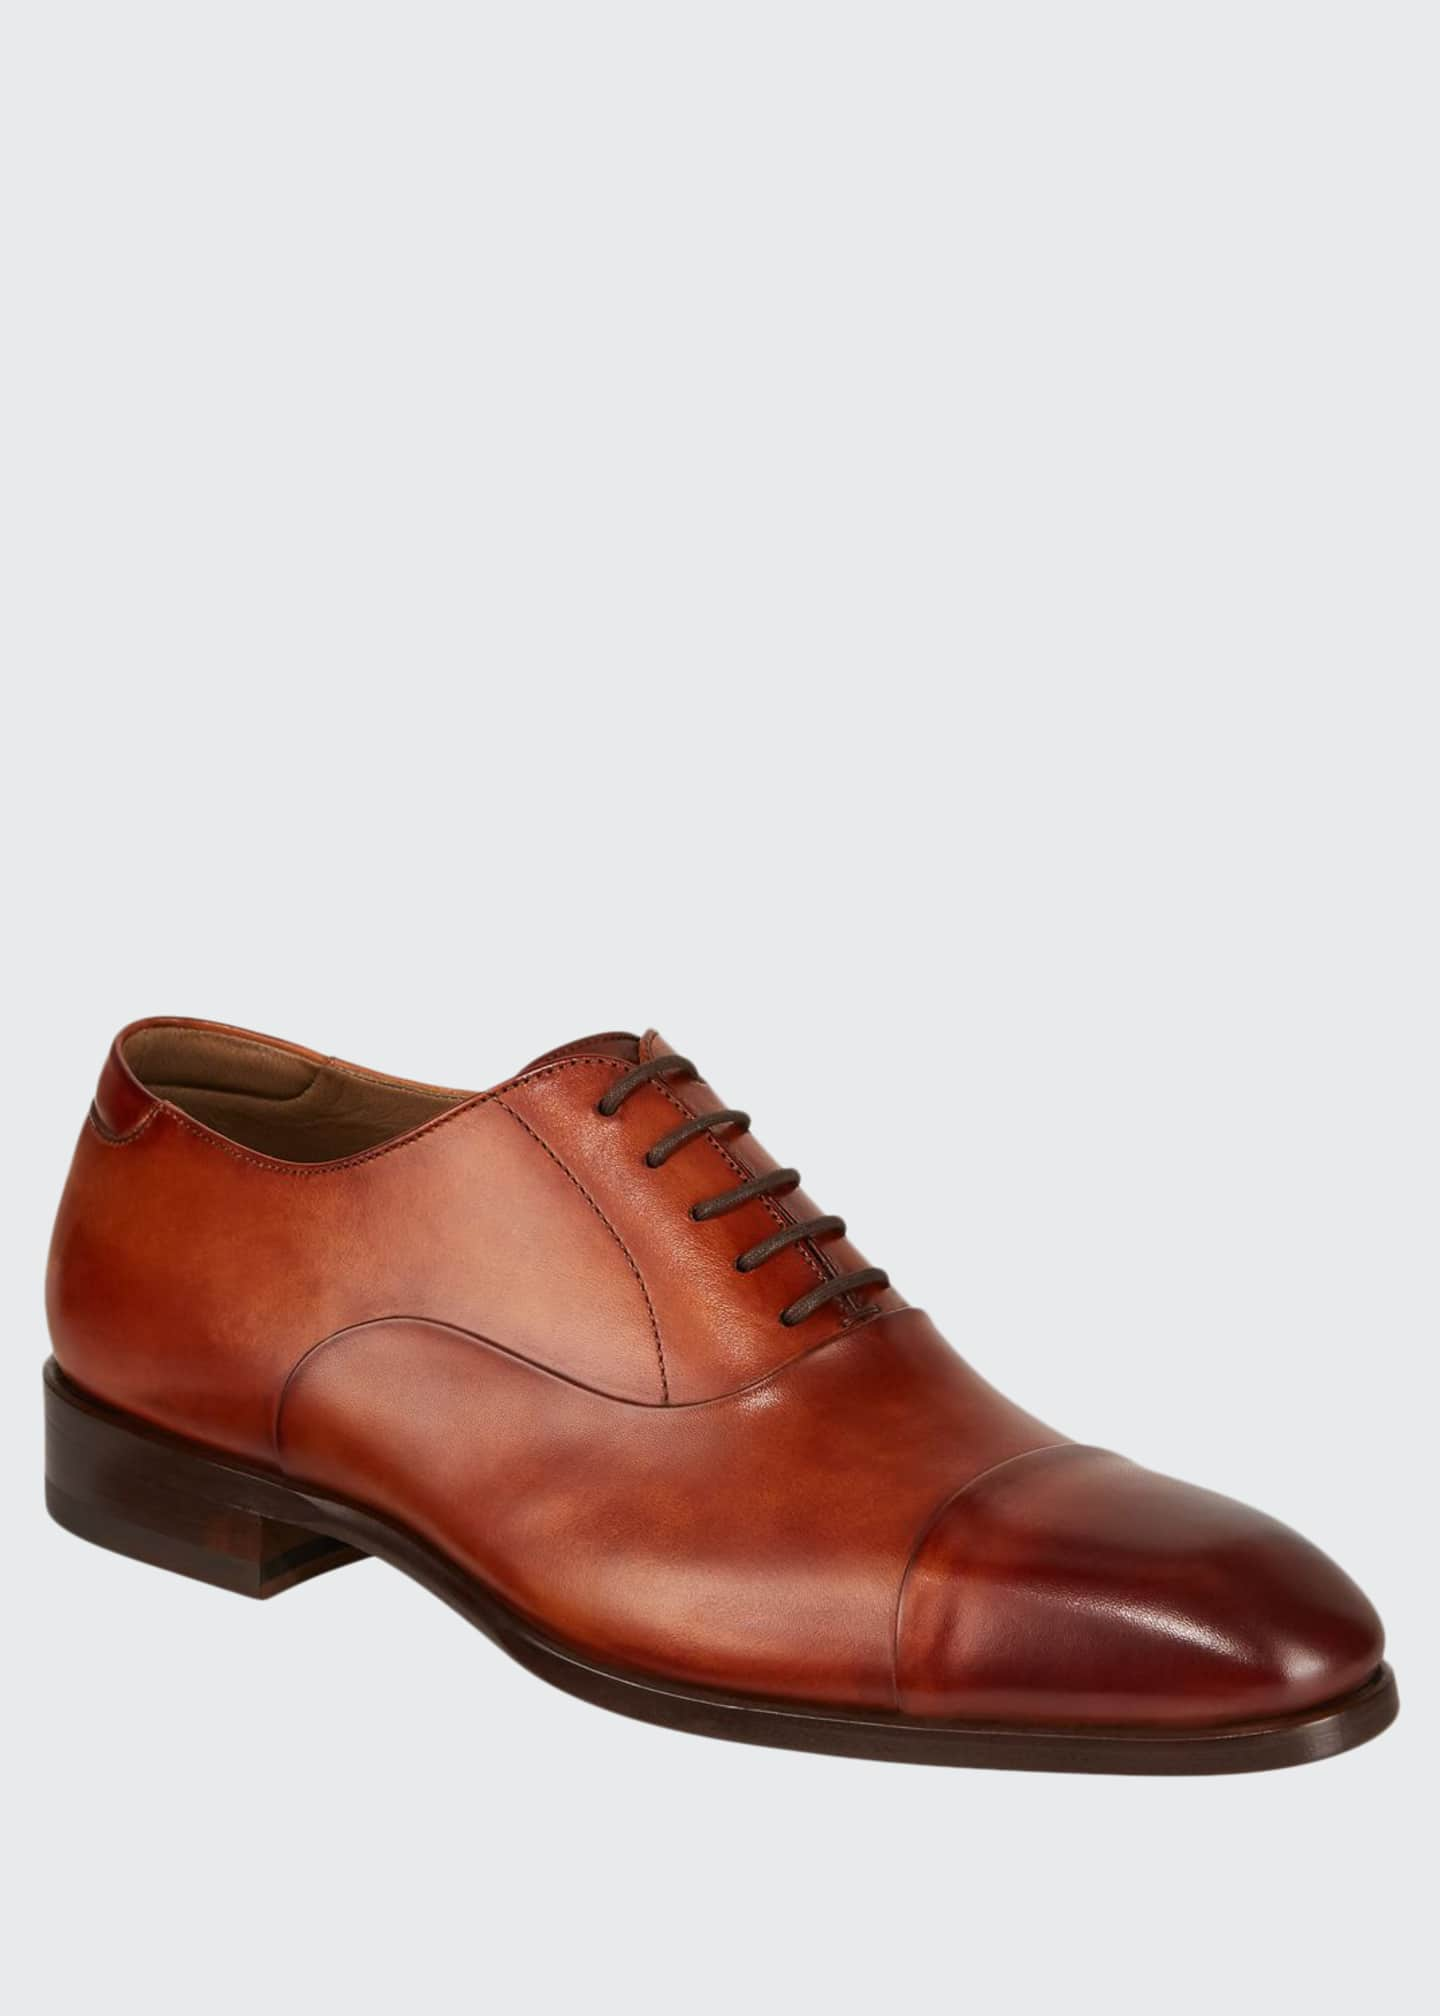 Magnanni for Neiman Marcus Men's Boltilux Leather Oxfords